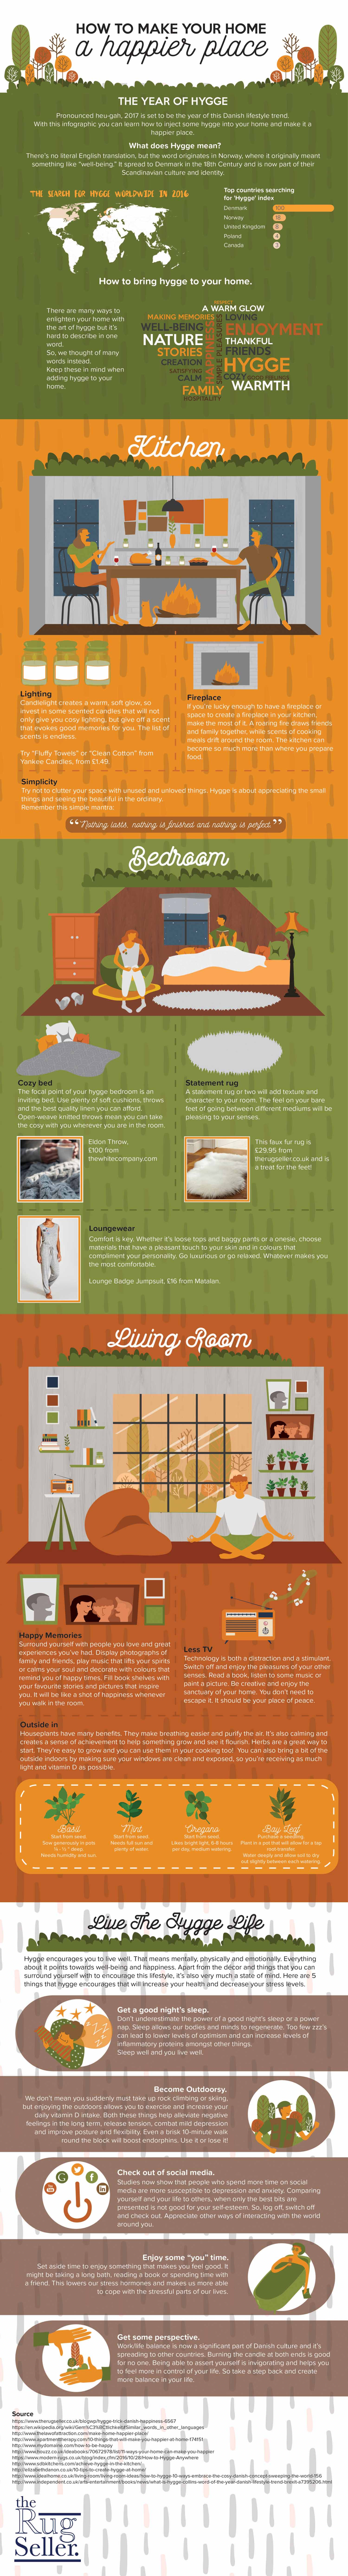 How to Make a Hygge Home